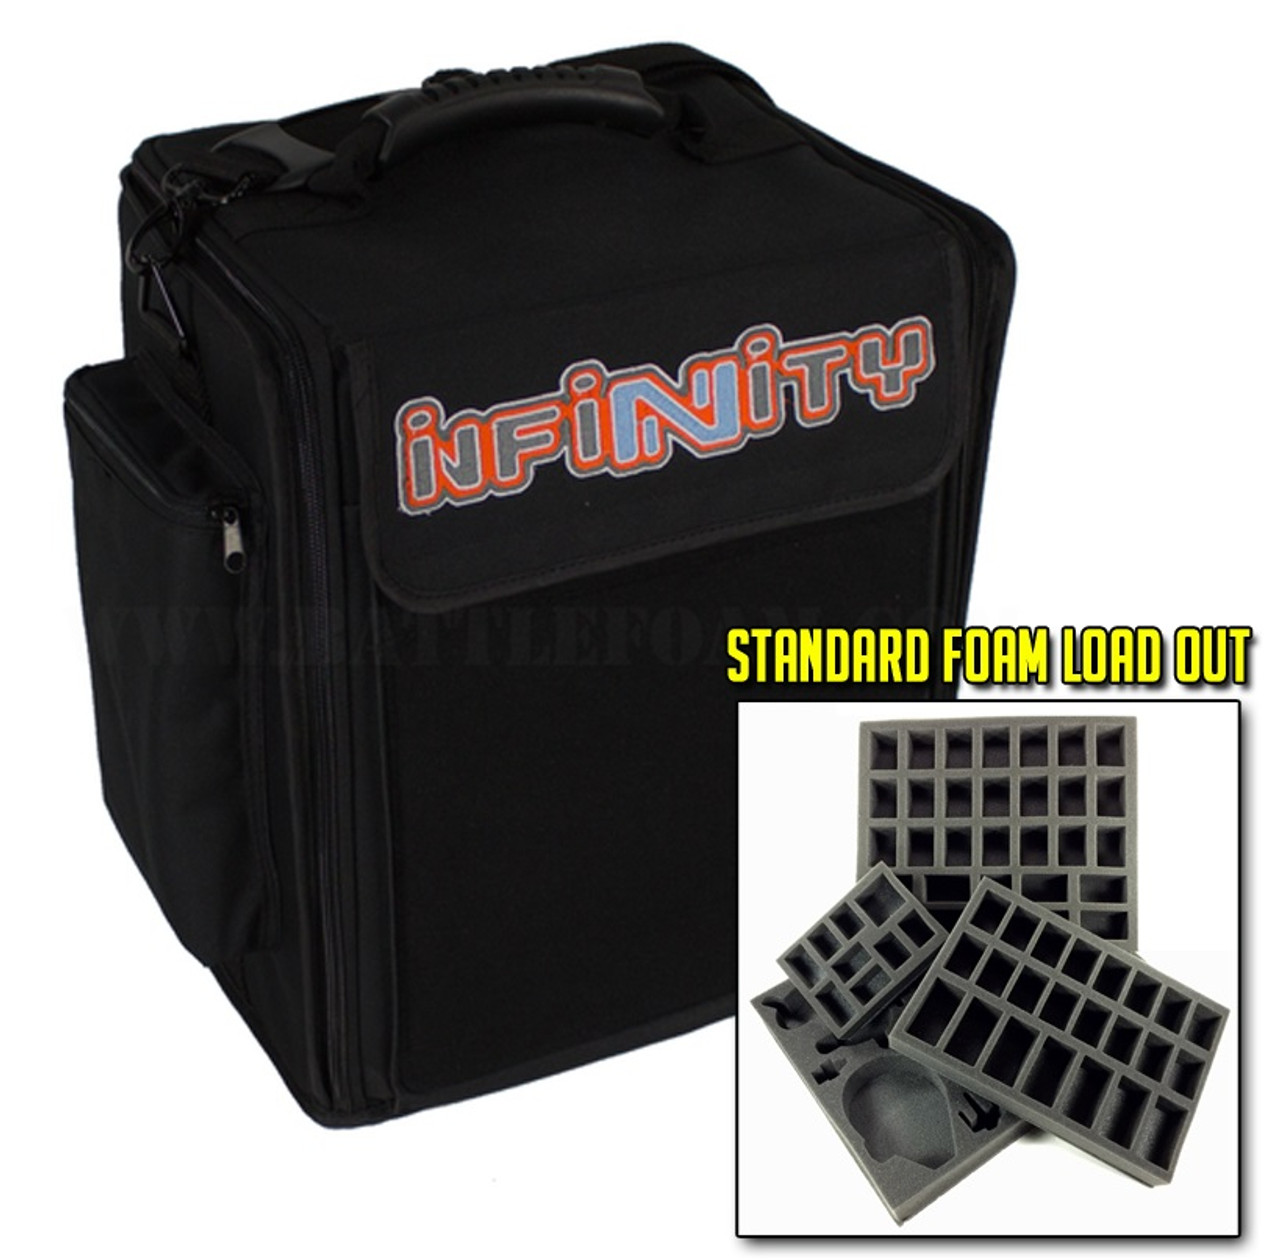 Infinity Alpha Bag 2 0 Horizontal Standard Load Out Battle Foam Whether going for a road show or overseas for a tournament, their bags meet all faa regulations for hand carry. infinity alpha bag 2 0 horizontal standard load out